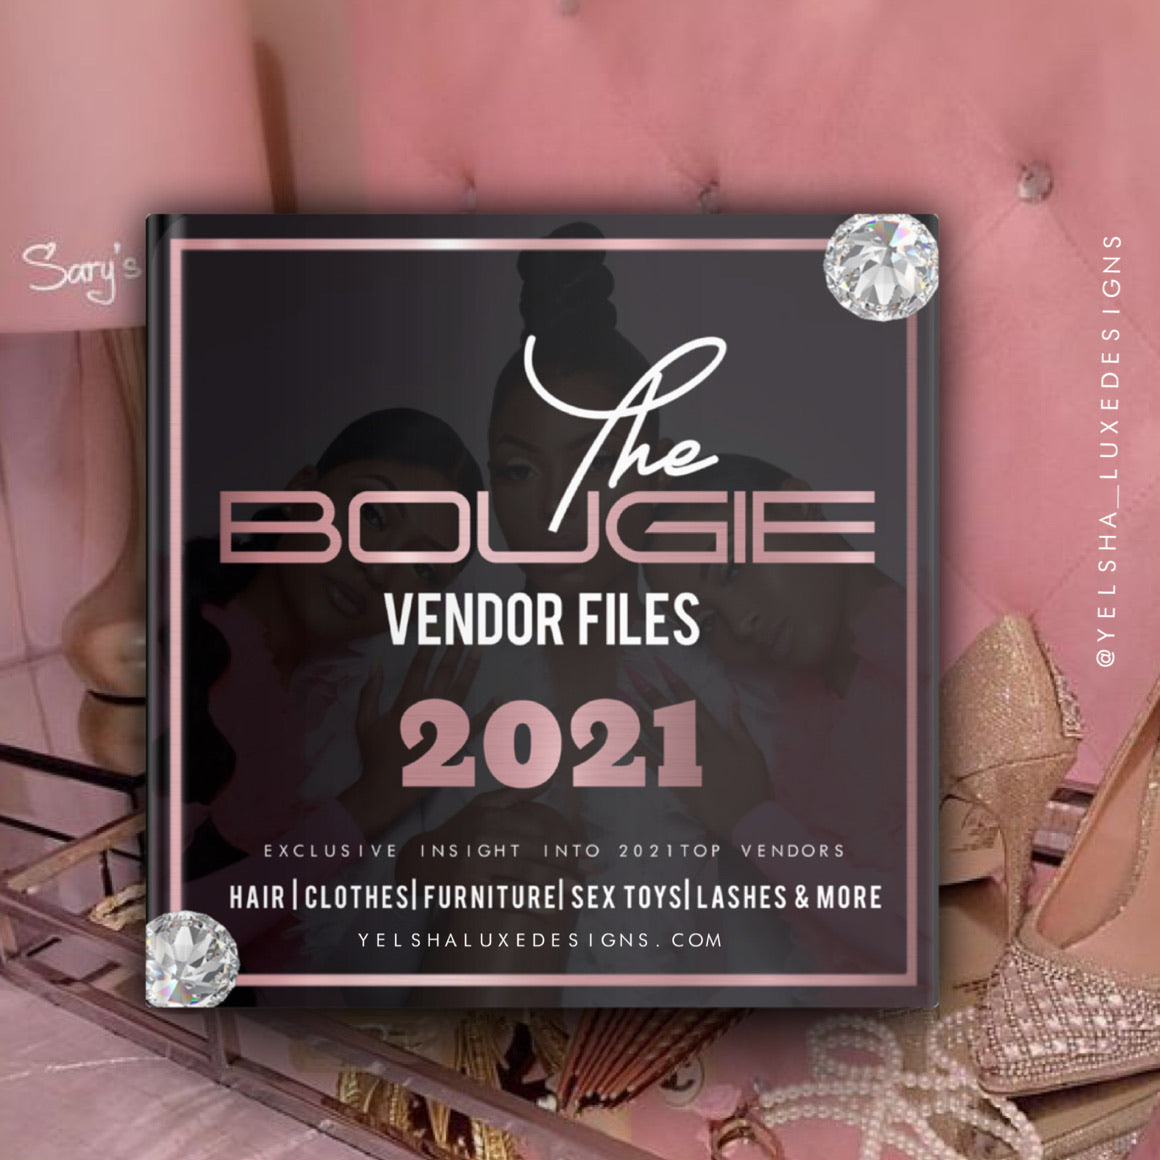 THE BOUGIE VENDOR FILES 2021